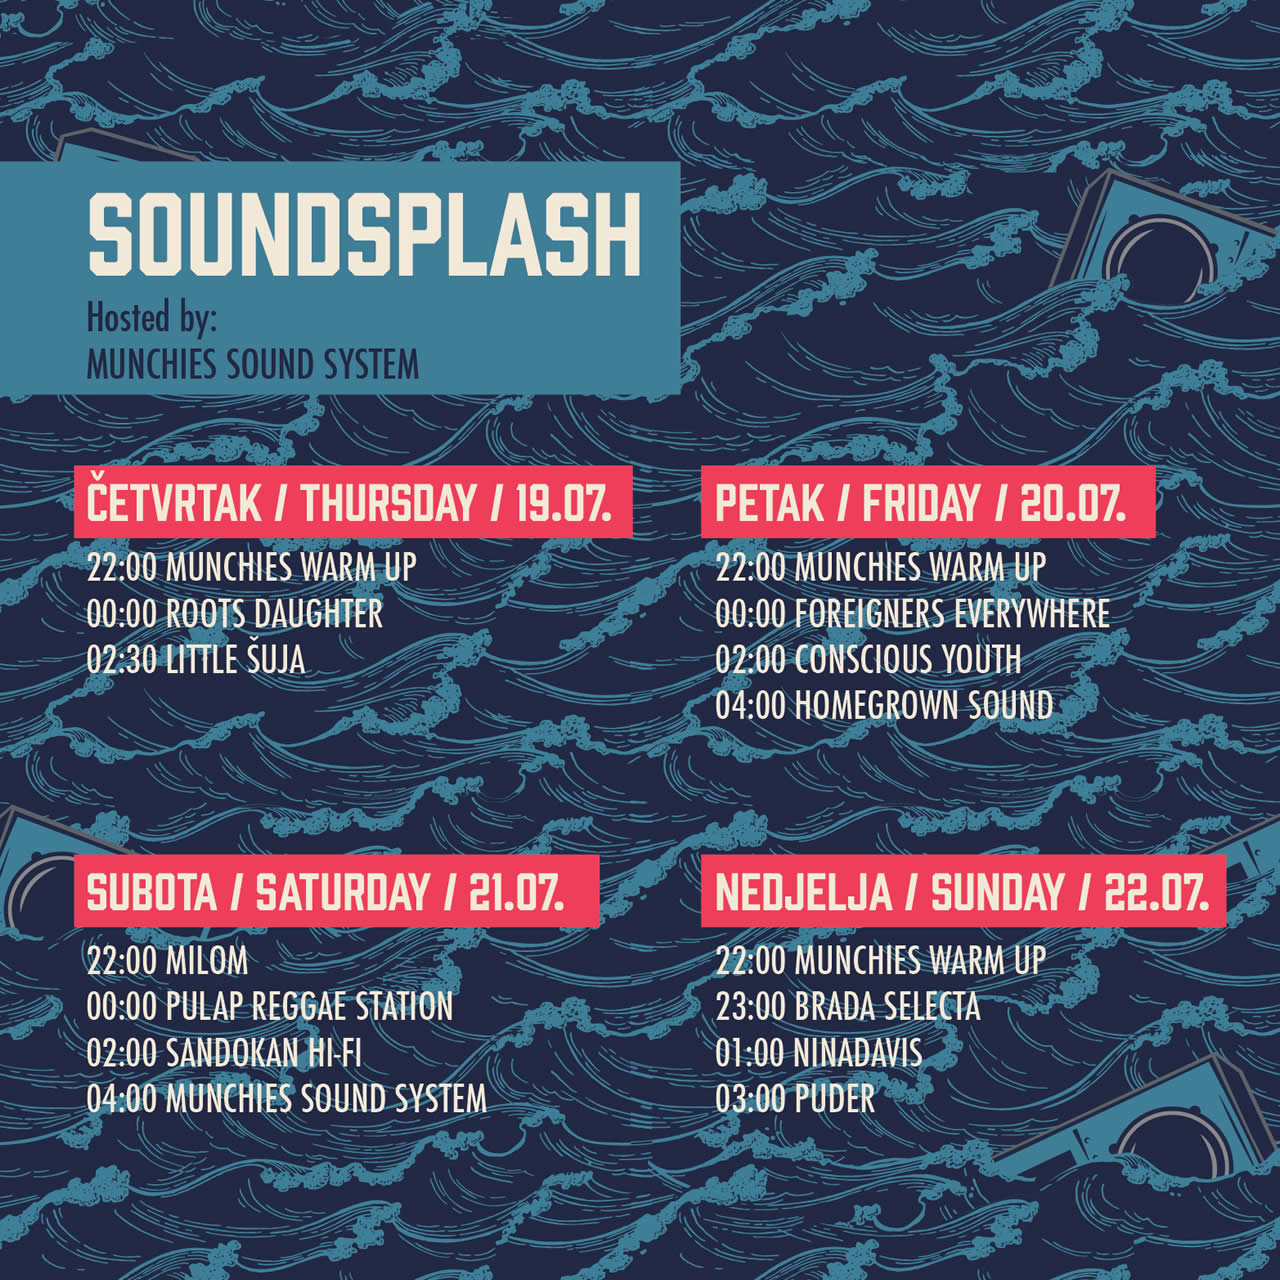 SoundSplash 2018 Schedule